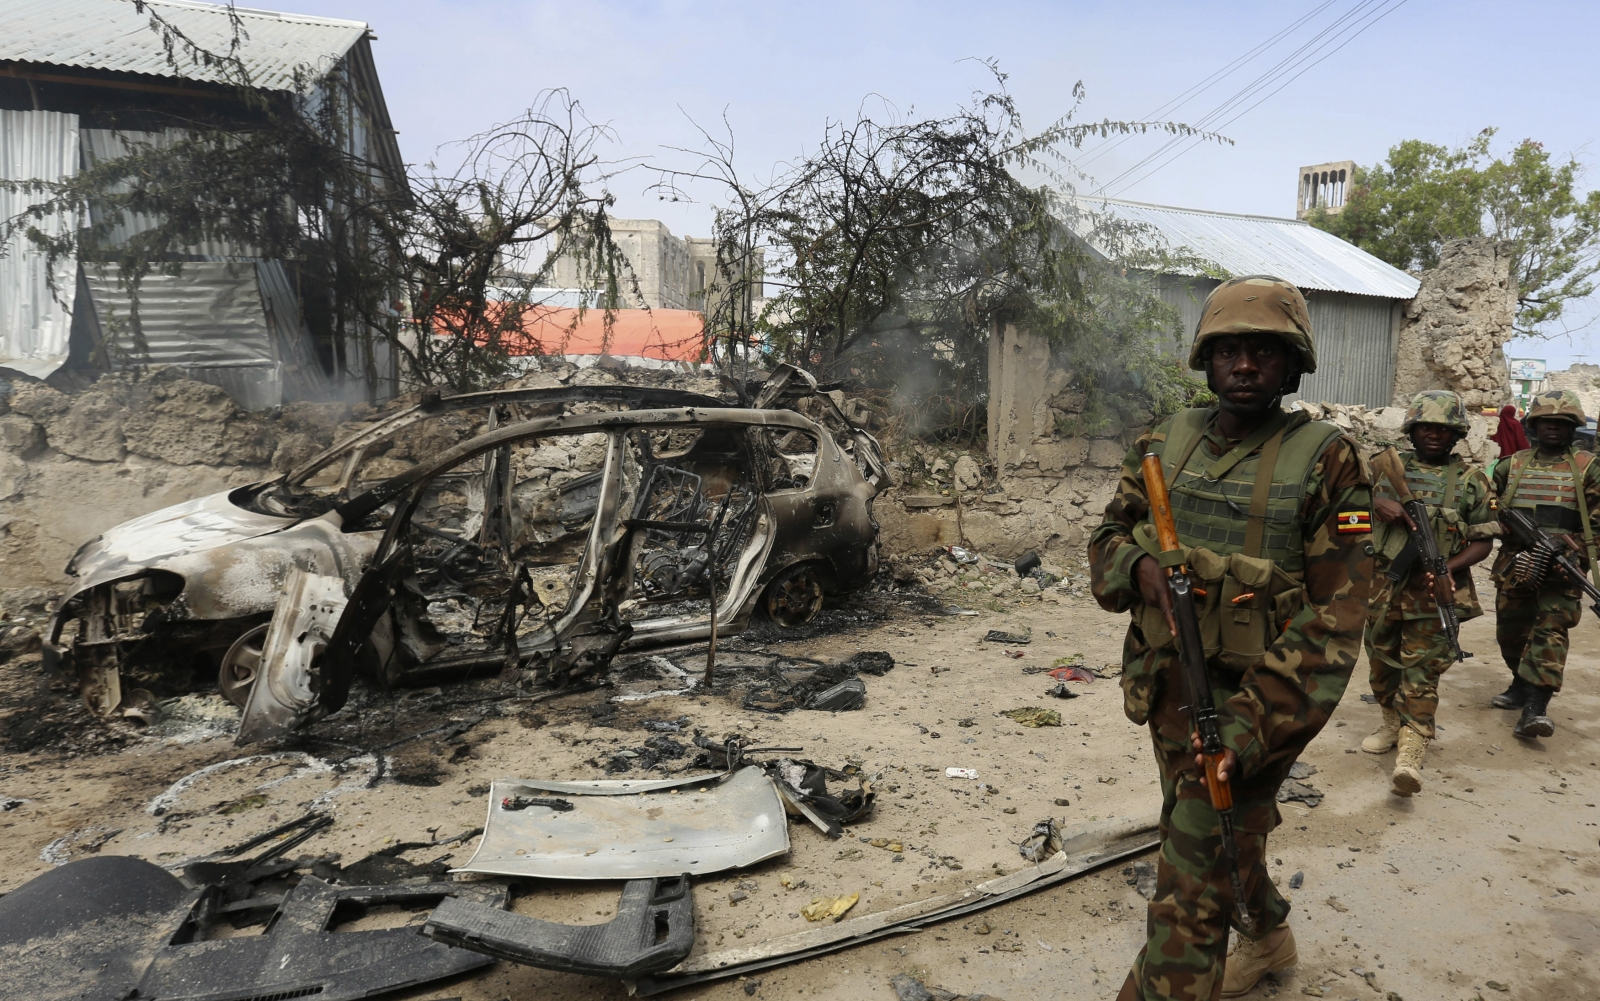 US airstrikes in Somalia against al-Shahab militants